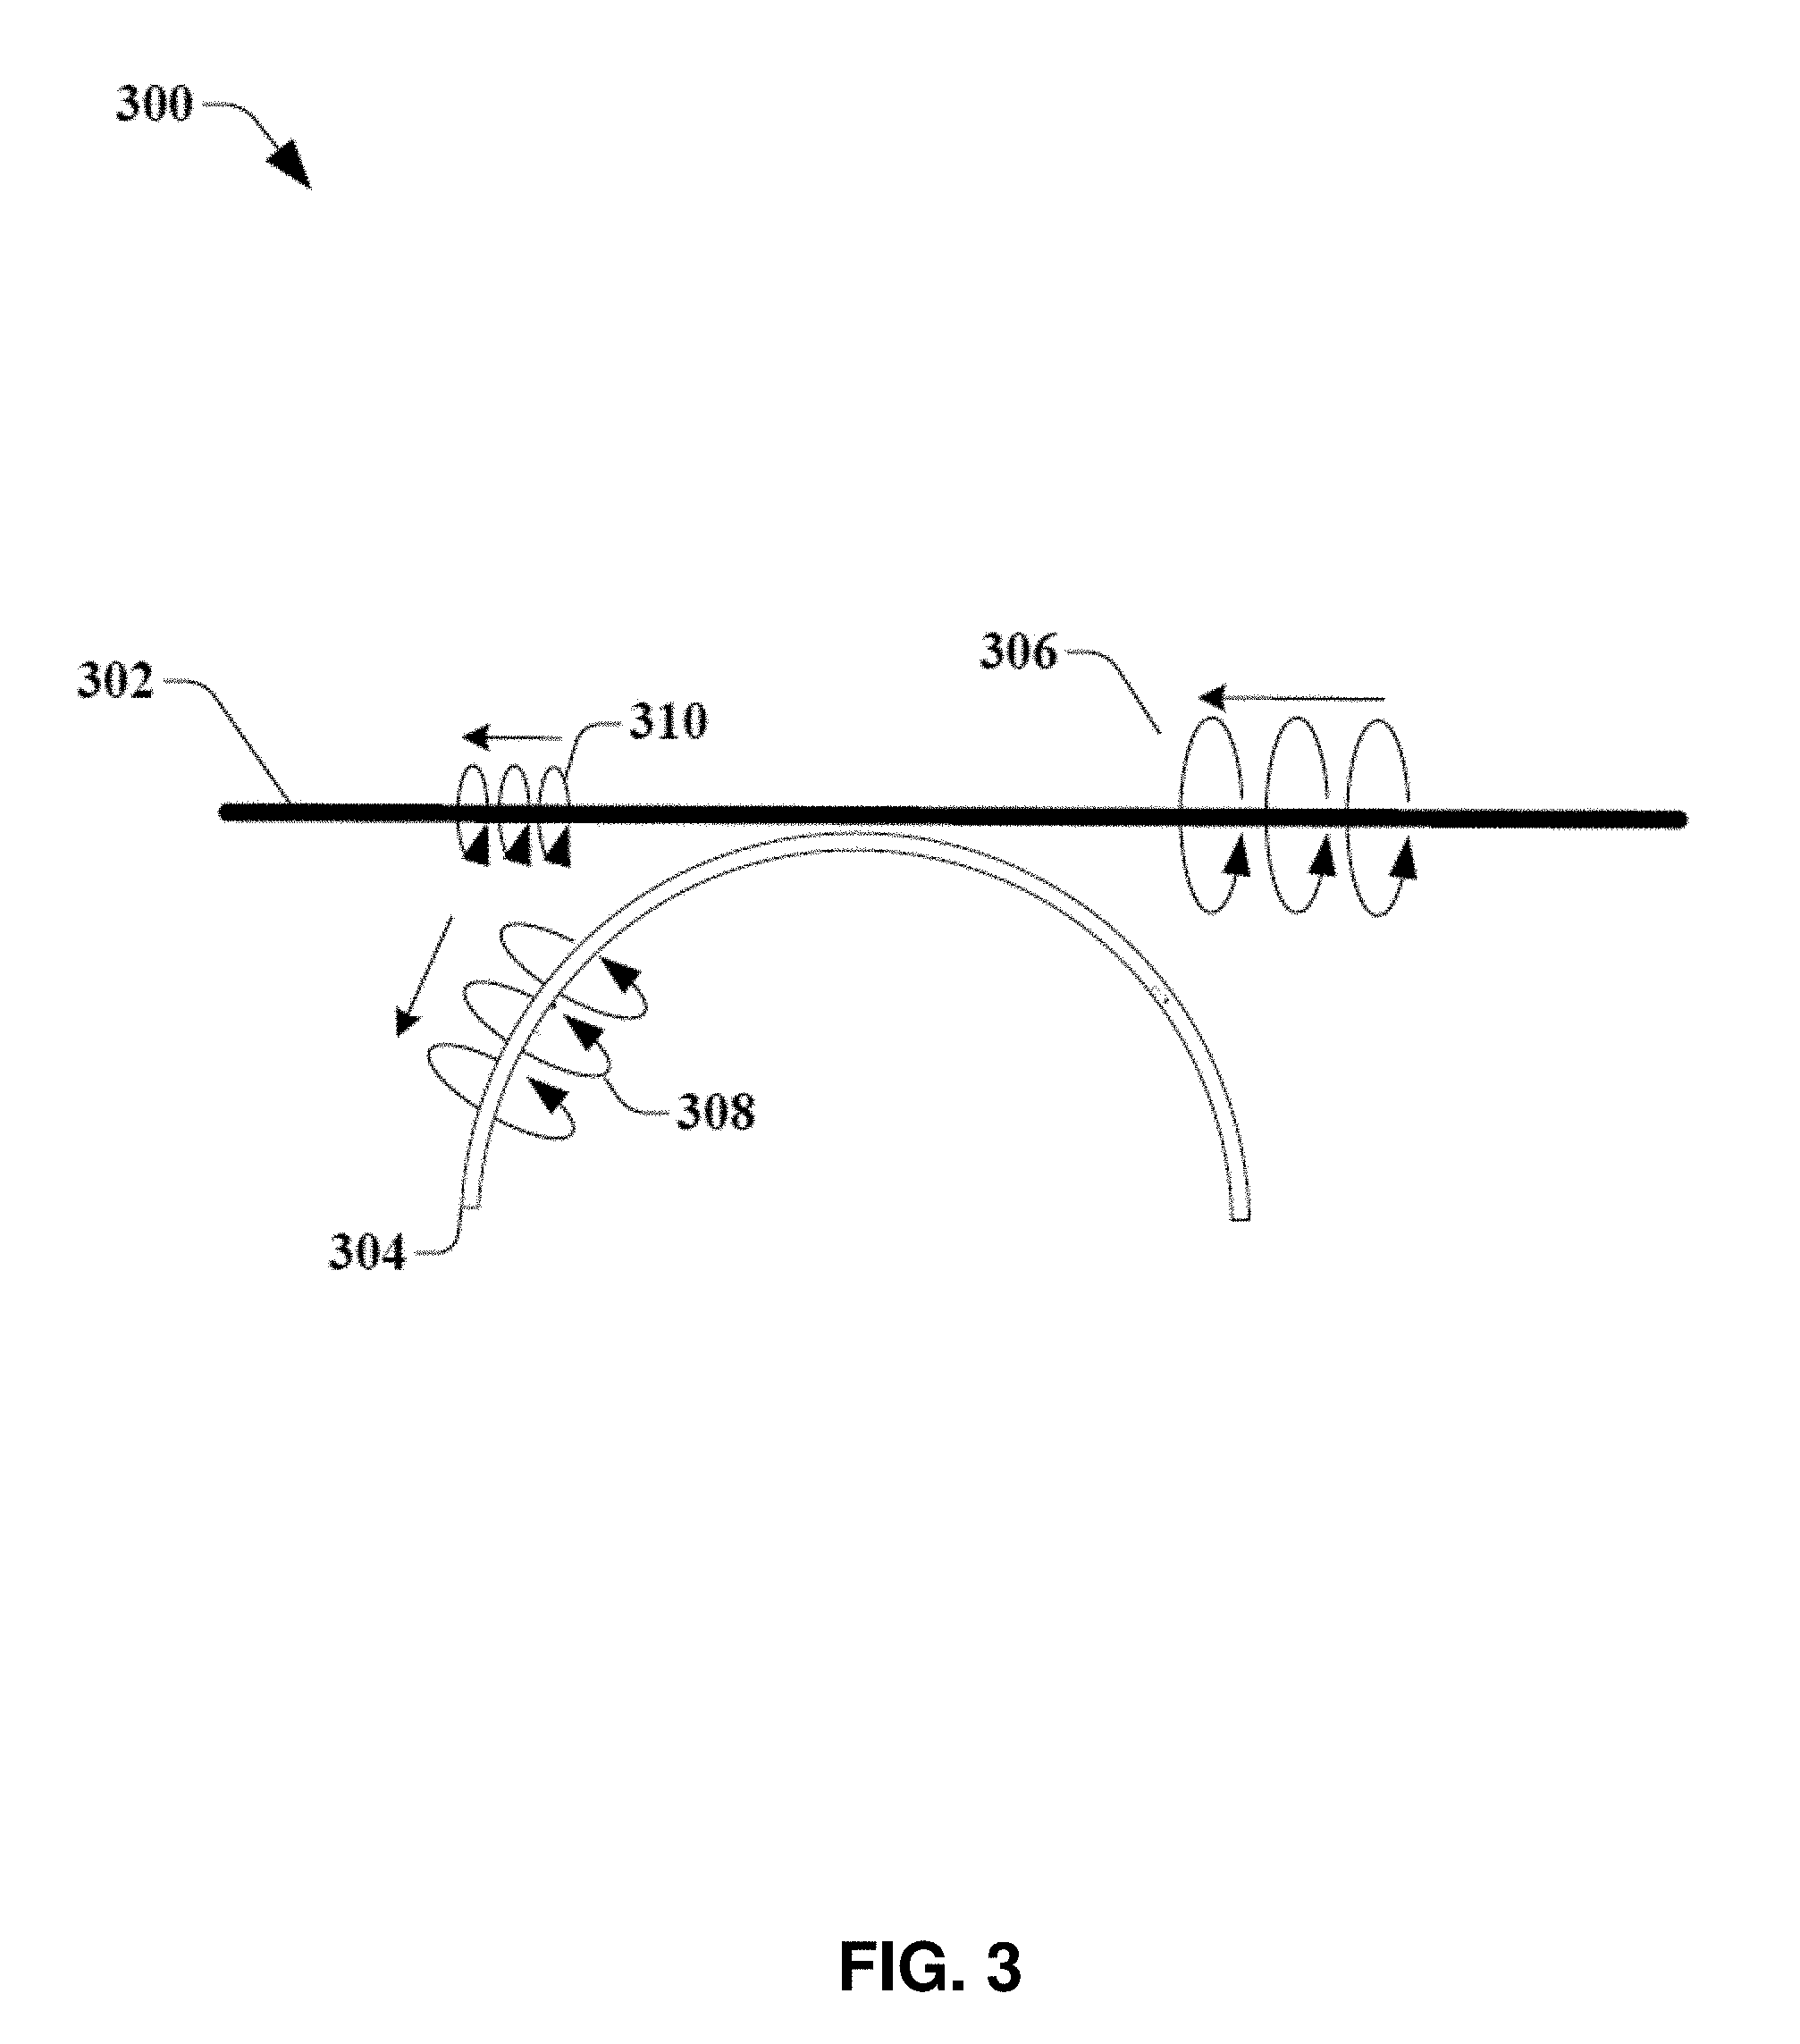 Us9780834b2 method and apparatus for transmitting electromag ic waves patents